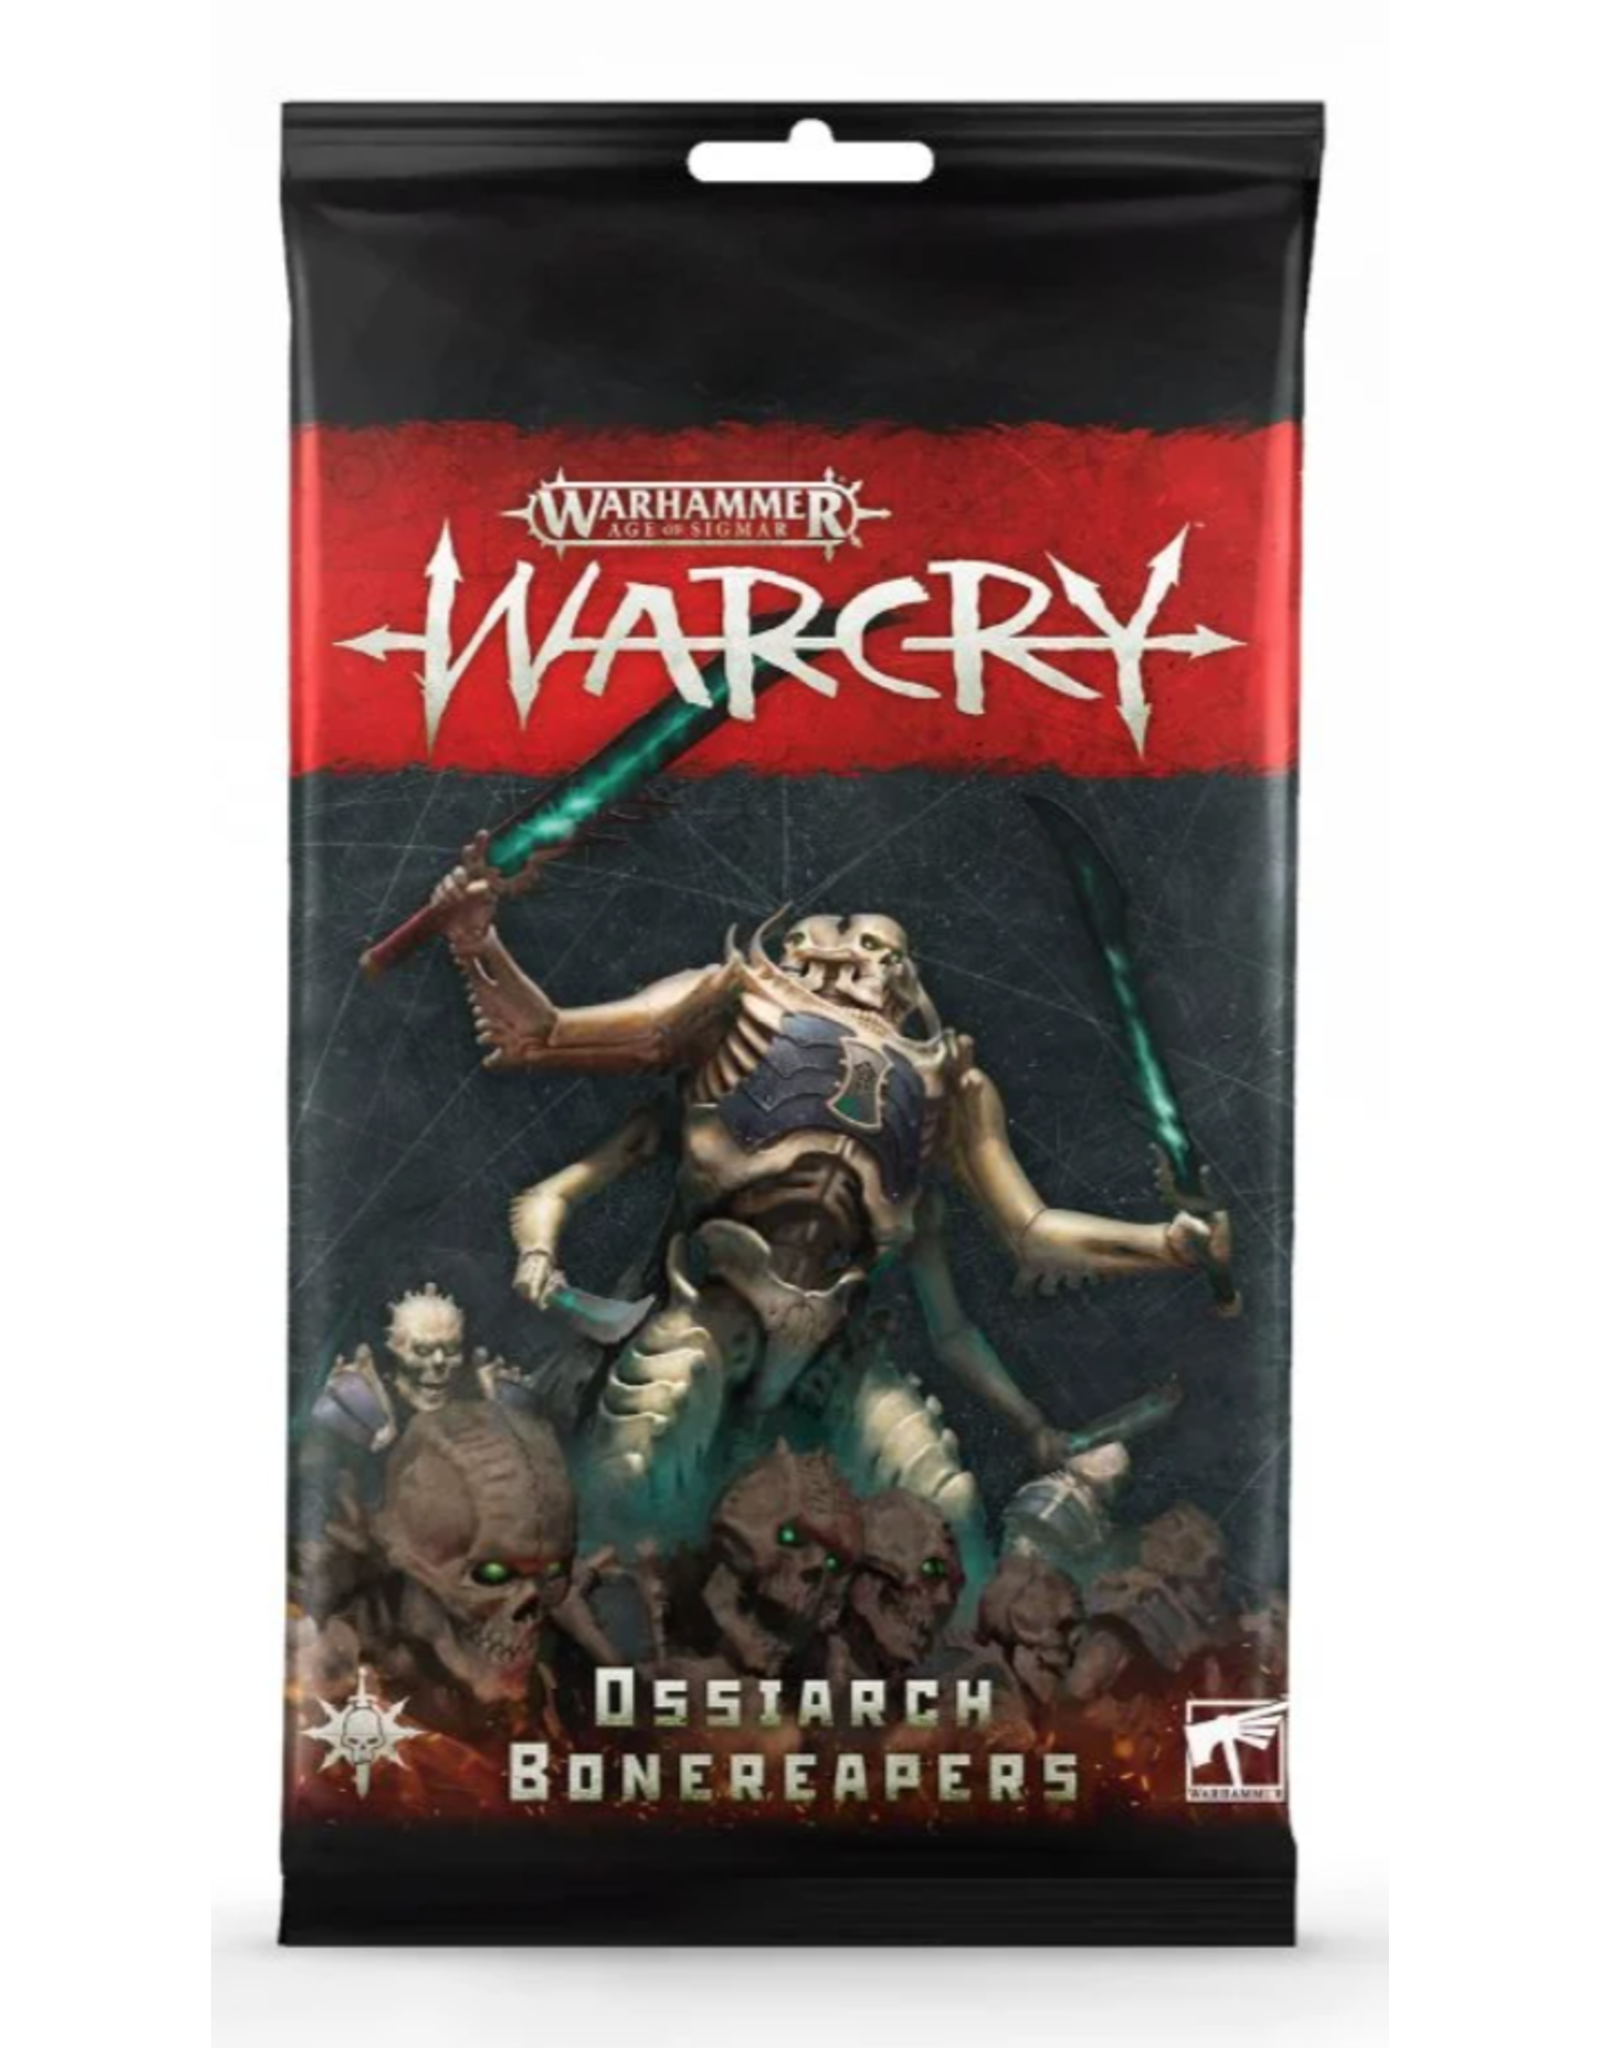 Tactical Miniature Games Warcry: Ossiarch Bonereapers Card Pack